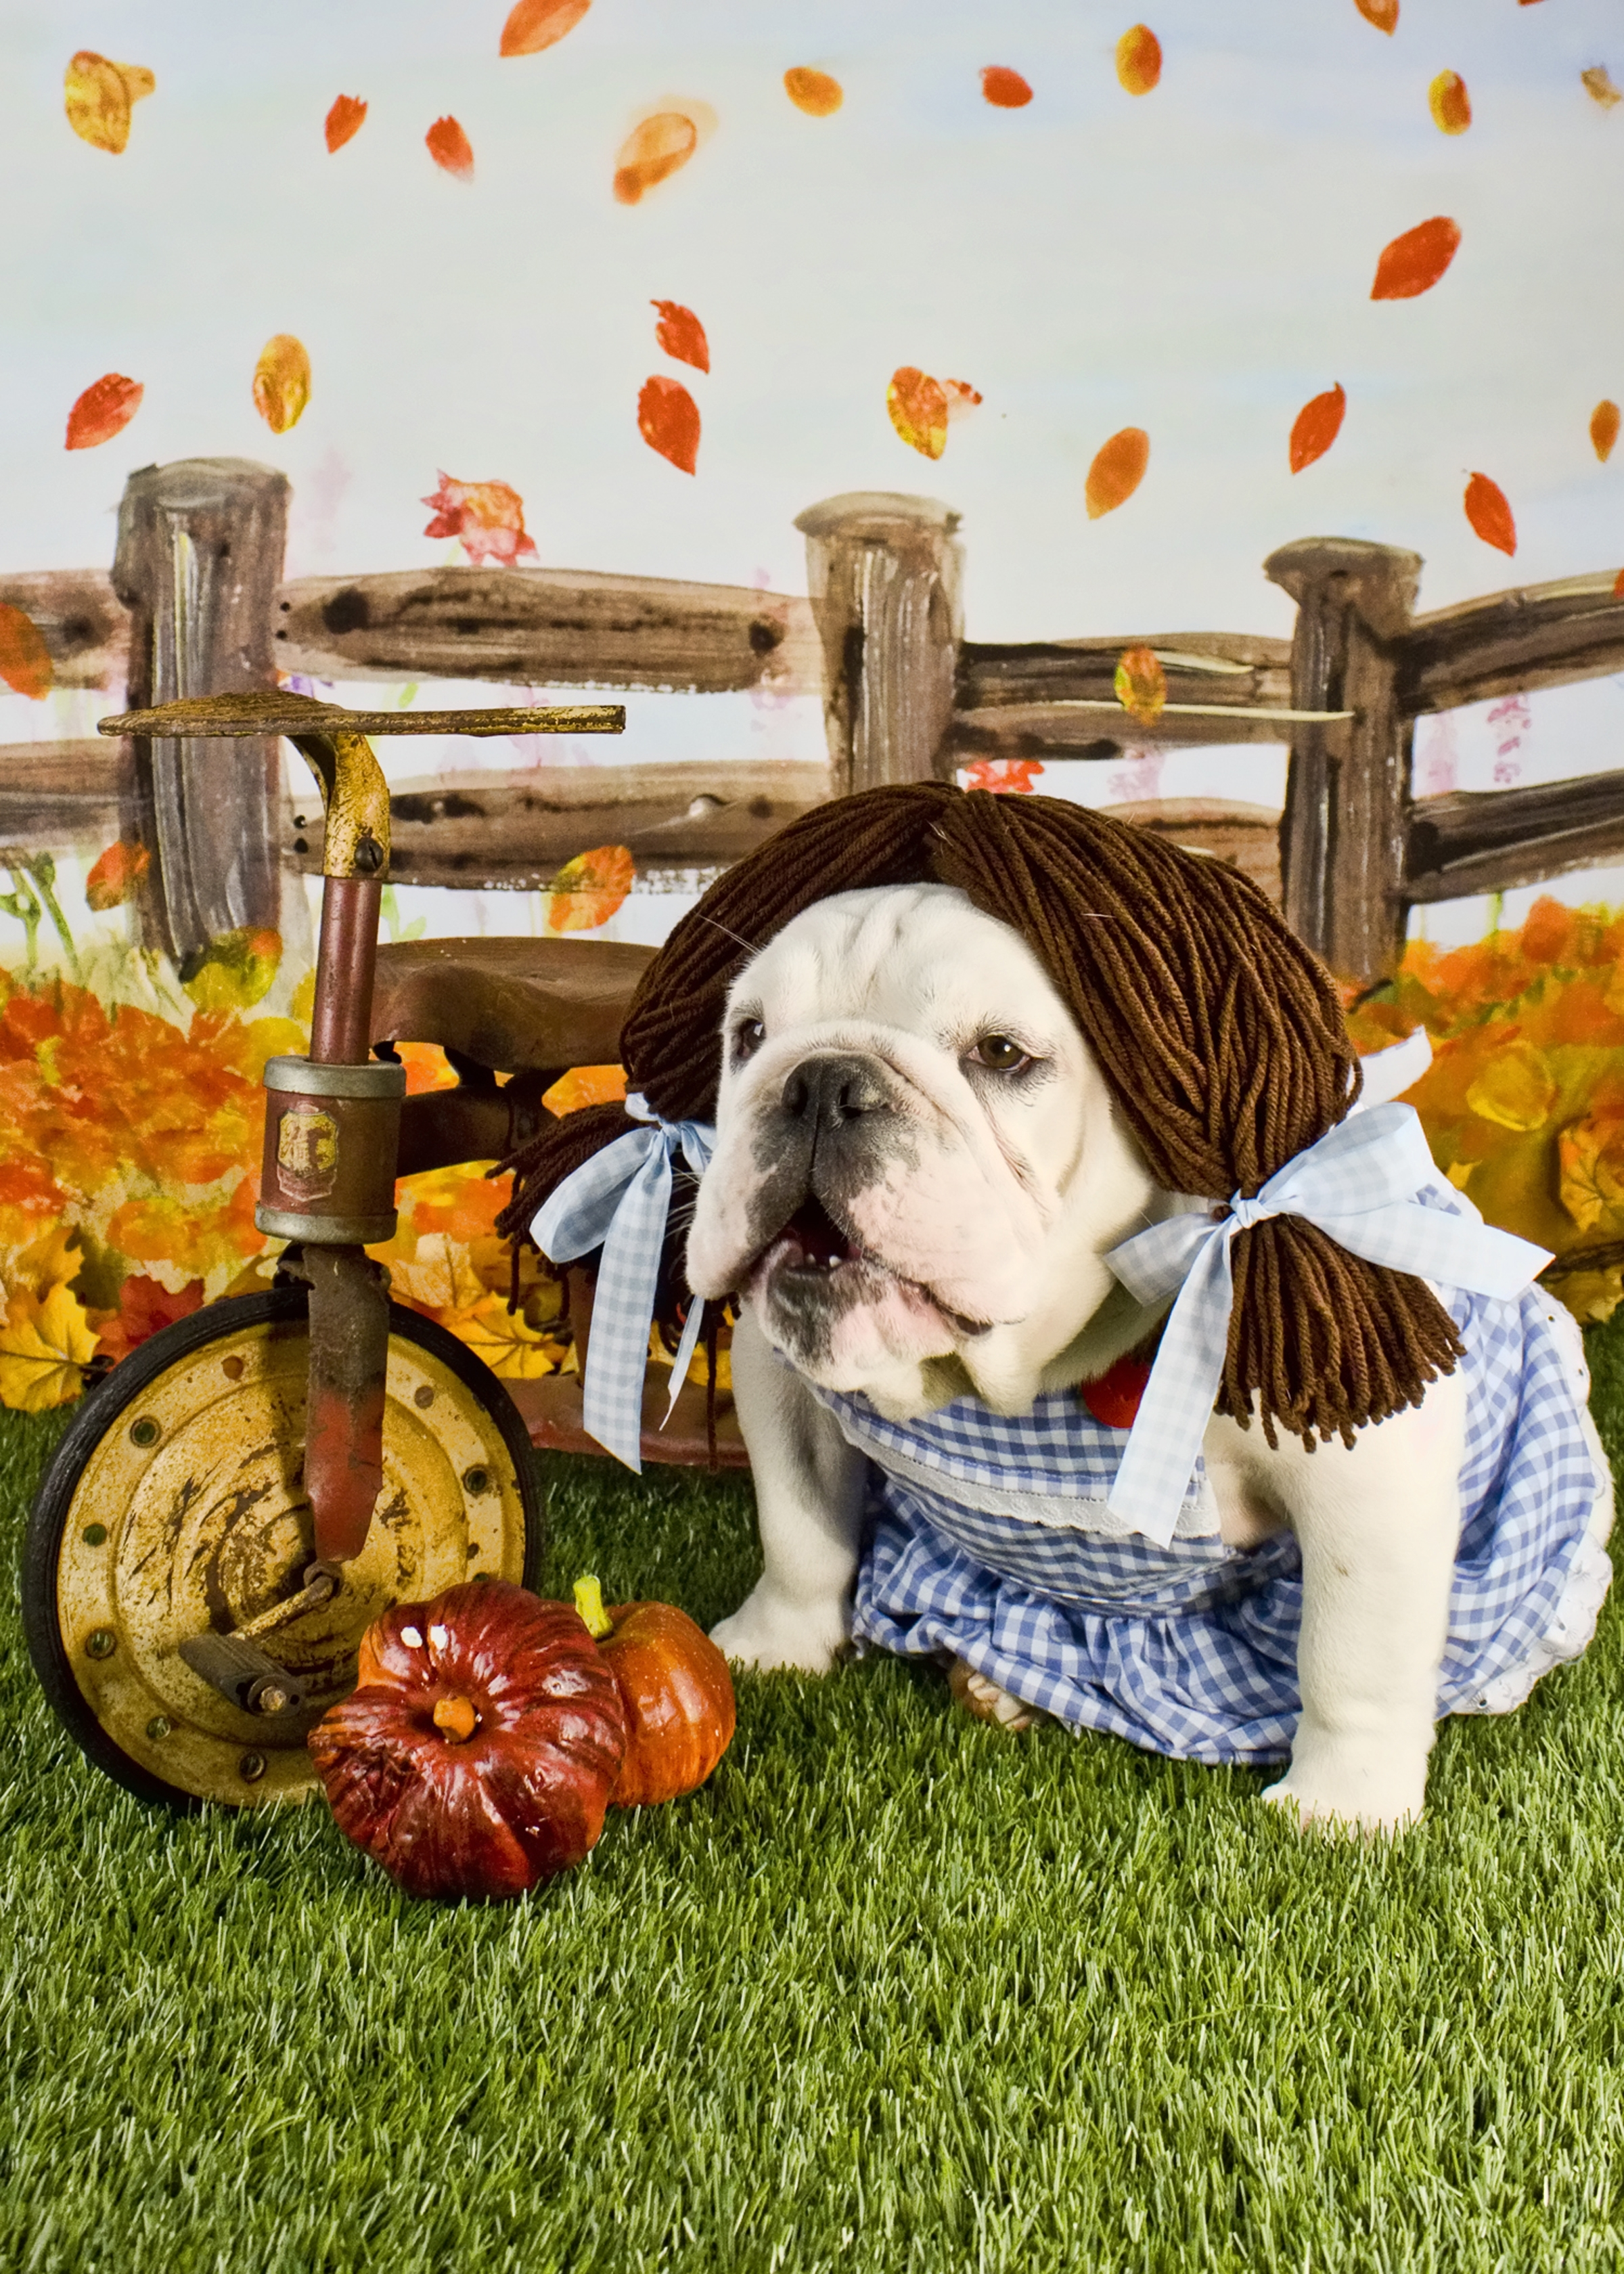 Petco Halloween Contest 2020 Dorothy the English Bulldog from Texas Wins $10,000 in PetSmart's